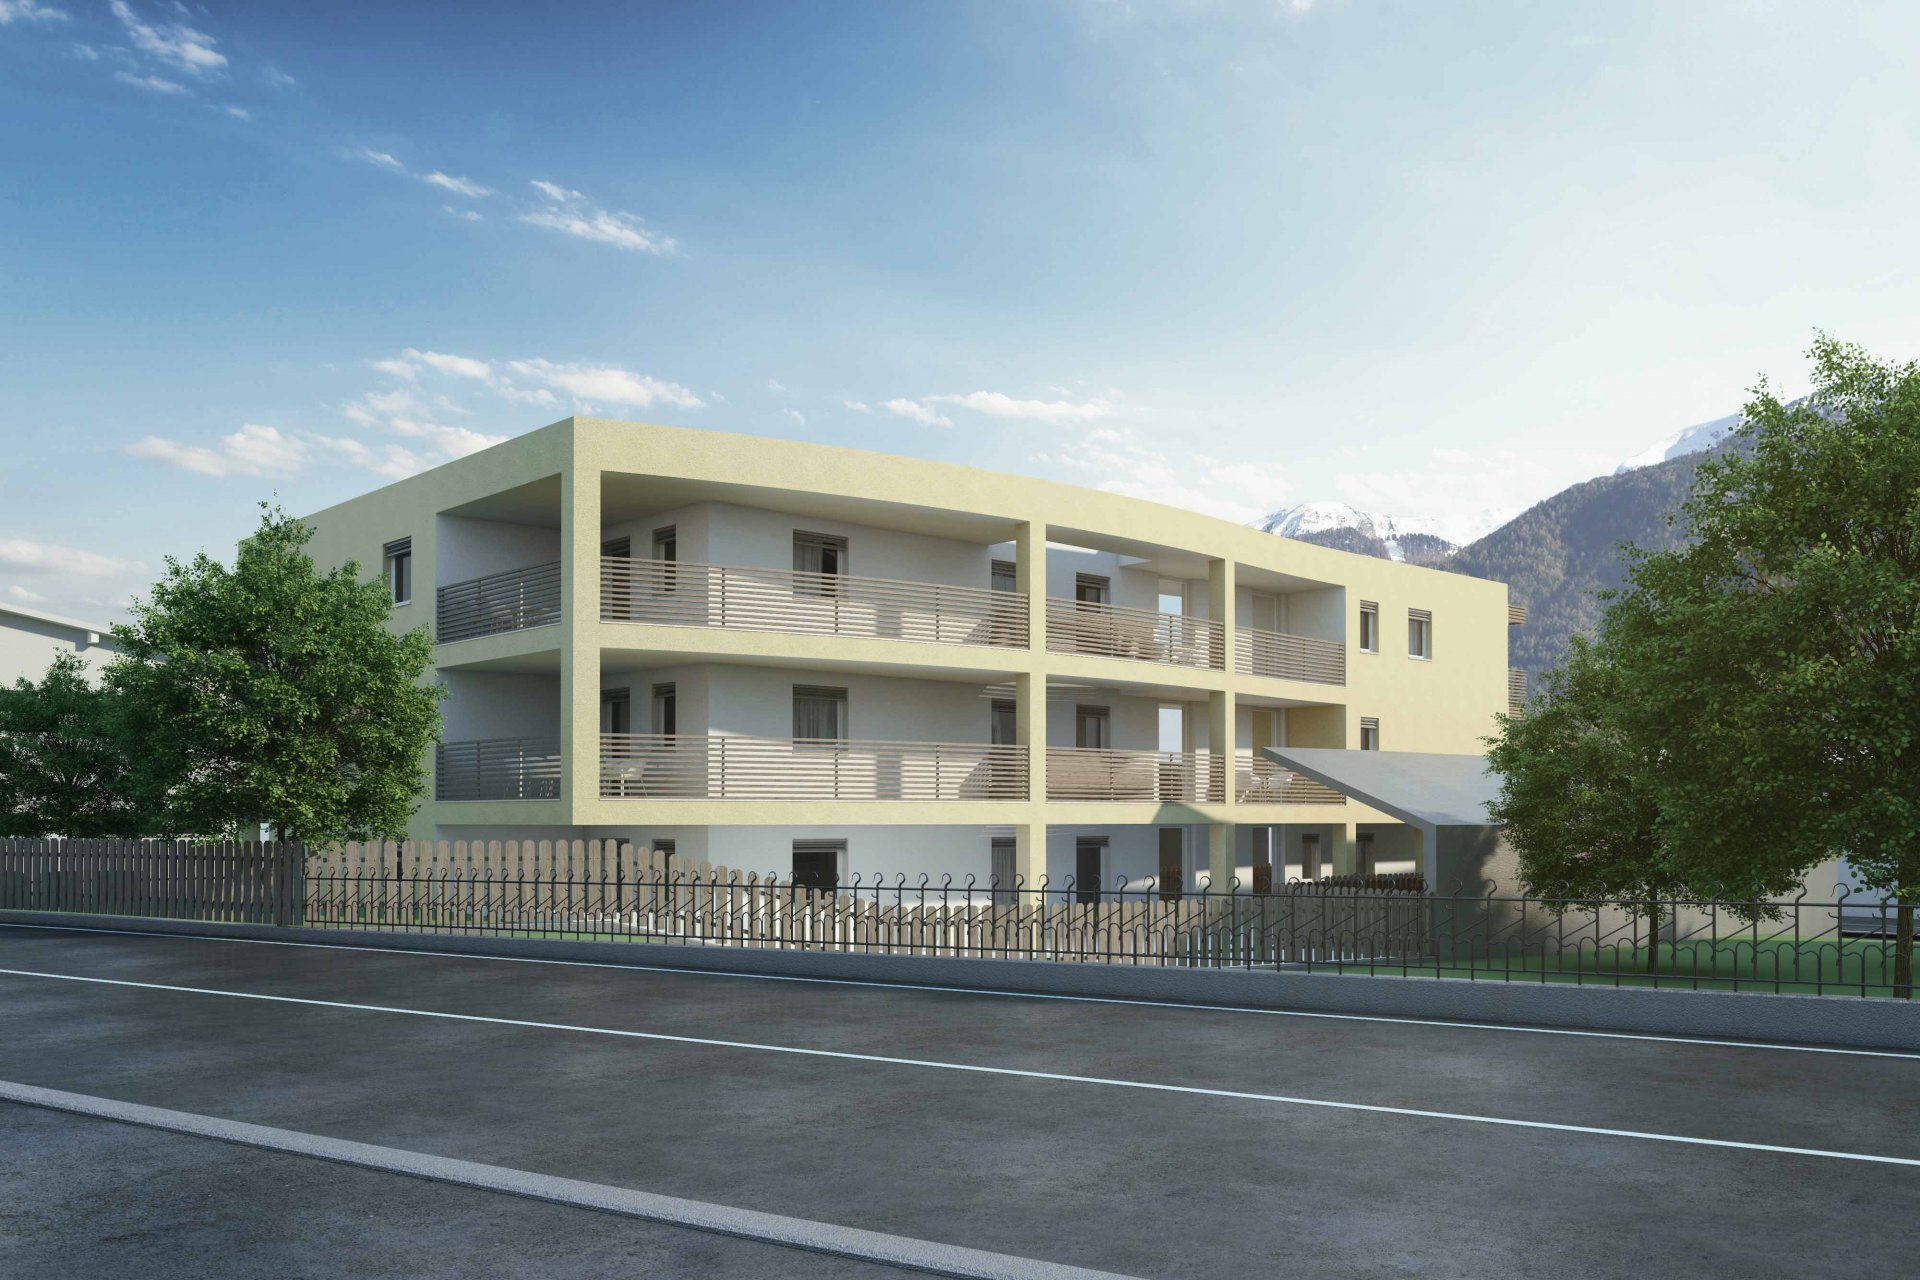 Residence st salvator 11 mader immobilien - Divisione immobile costi ...